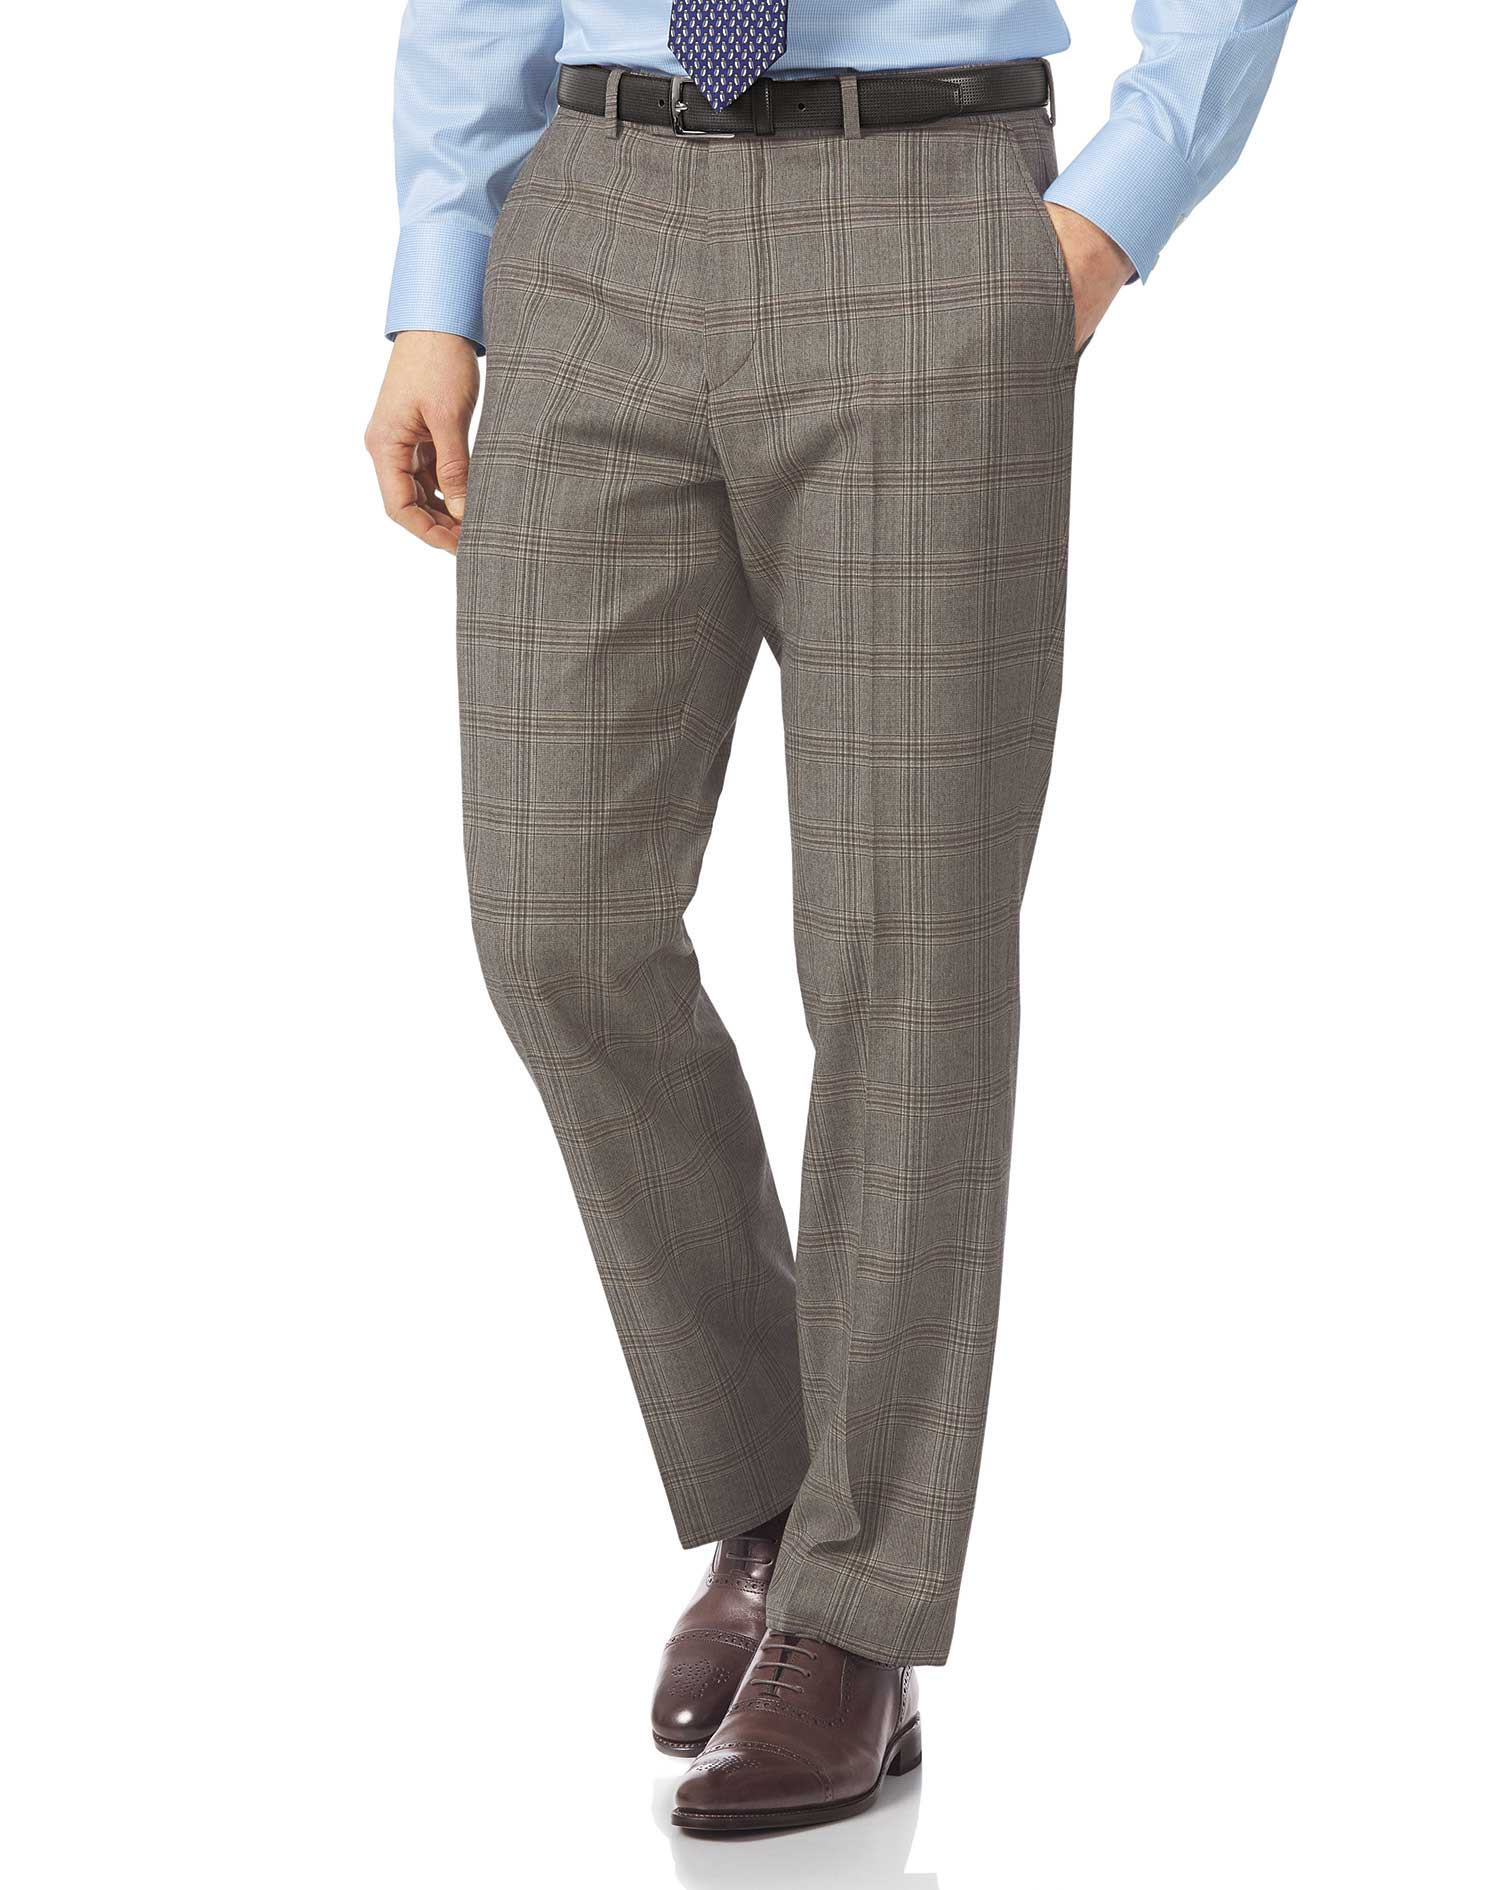 Grey classic fit British Prince of Wales check luxury suit trousers